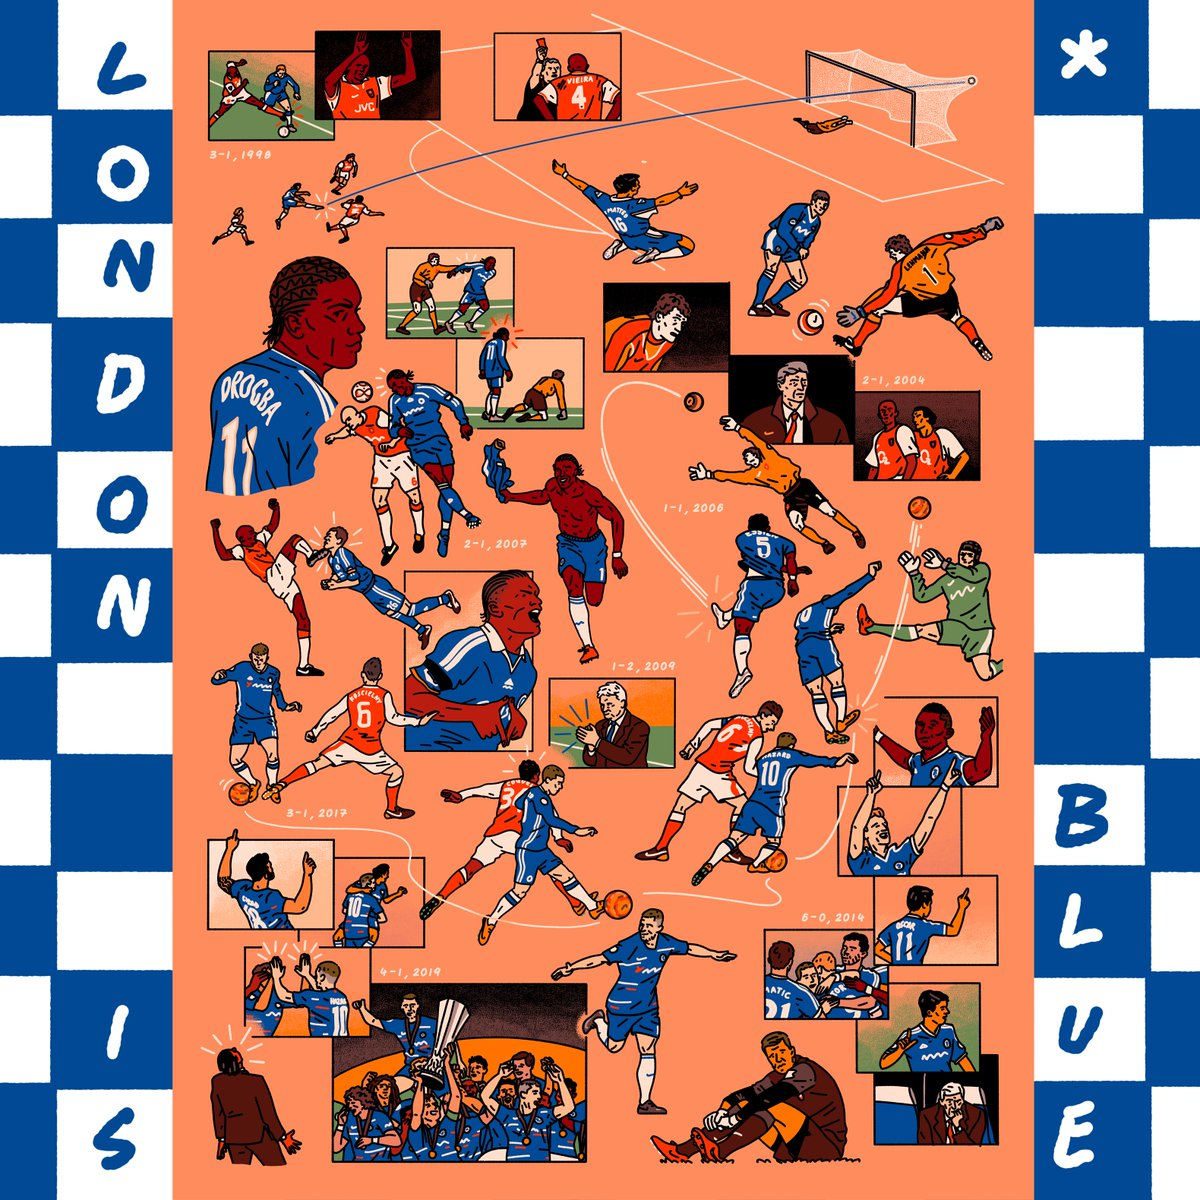 """""""London is Blue"""" by illustrator @cjholme. 🎨   Chester interprets iconic #CHEARS moments for #ChelseaCreates, can you identify them?    Comment below. 👇 https://t.co/DjykMtZjZK"""